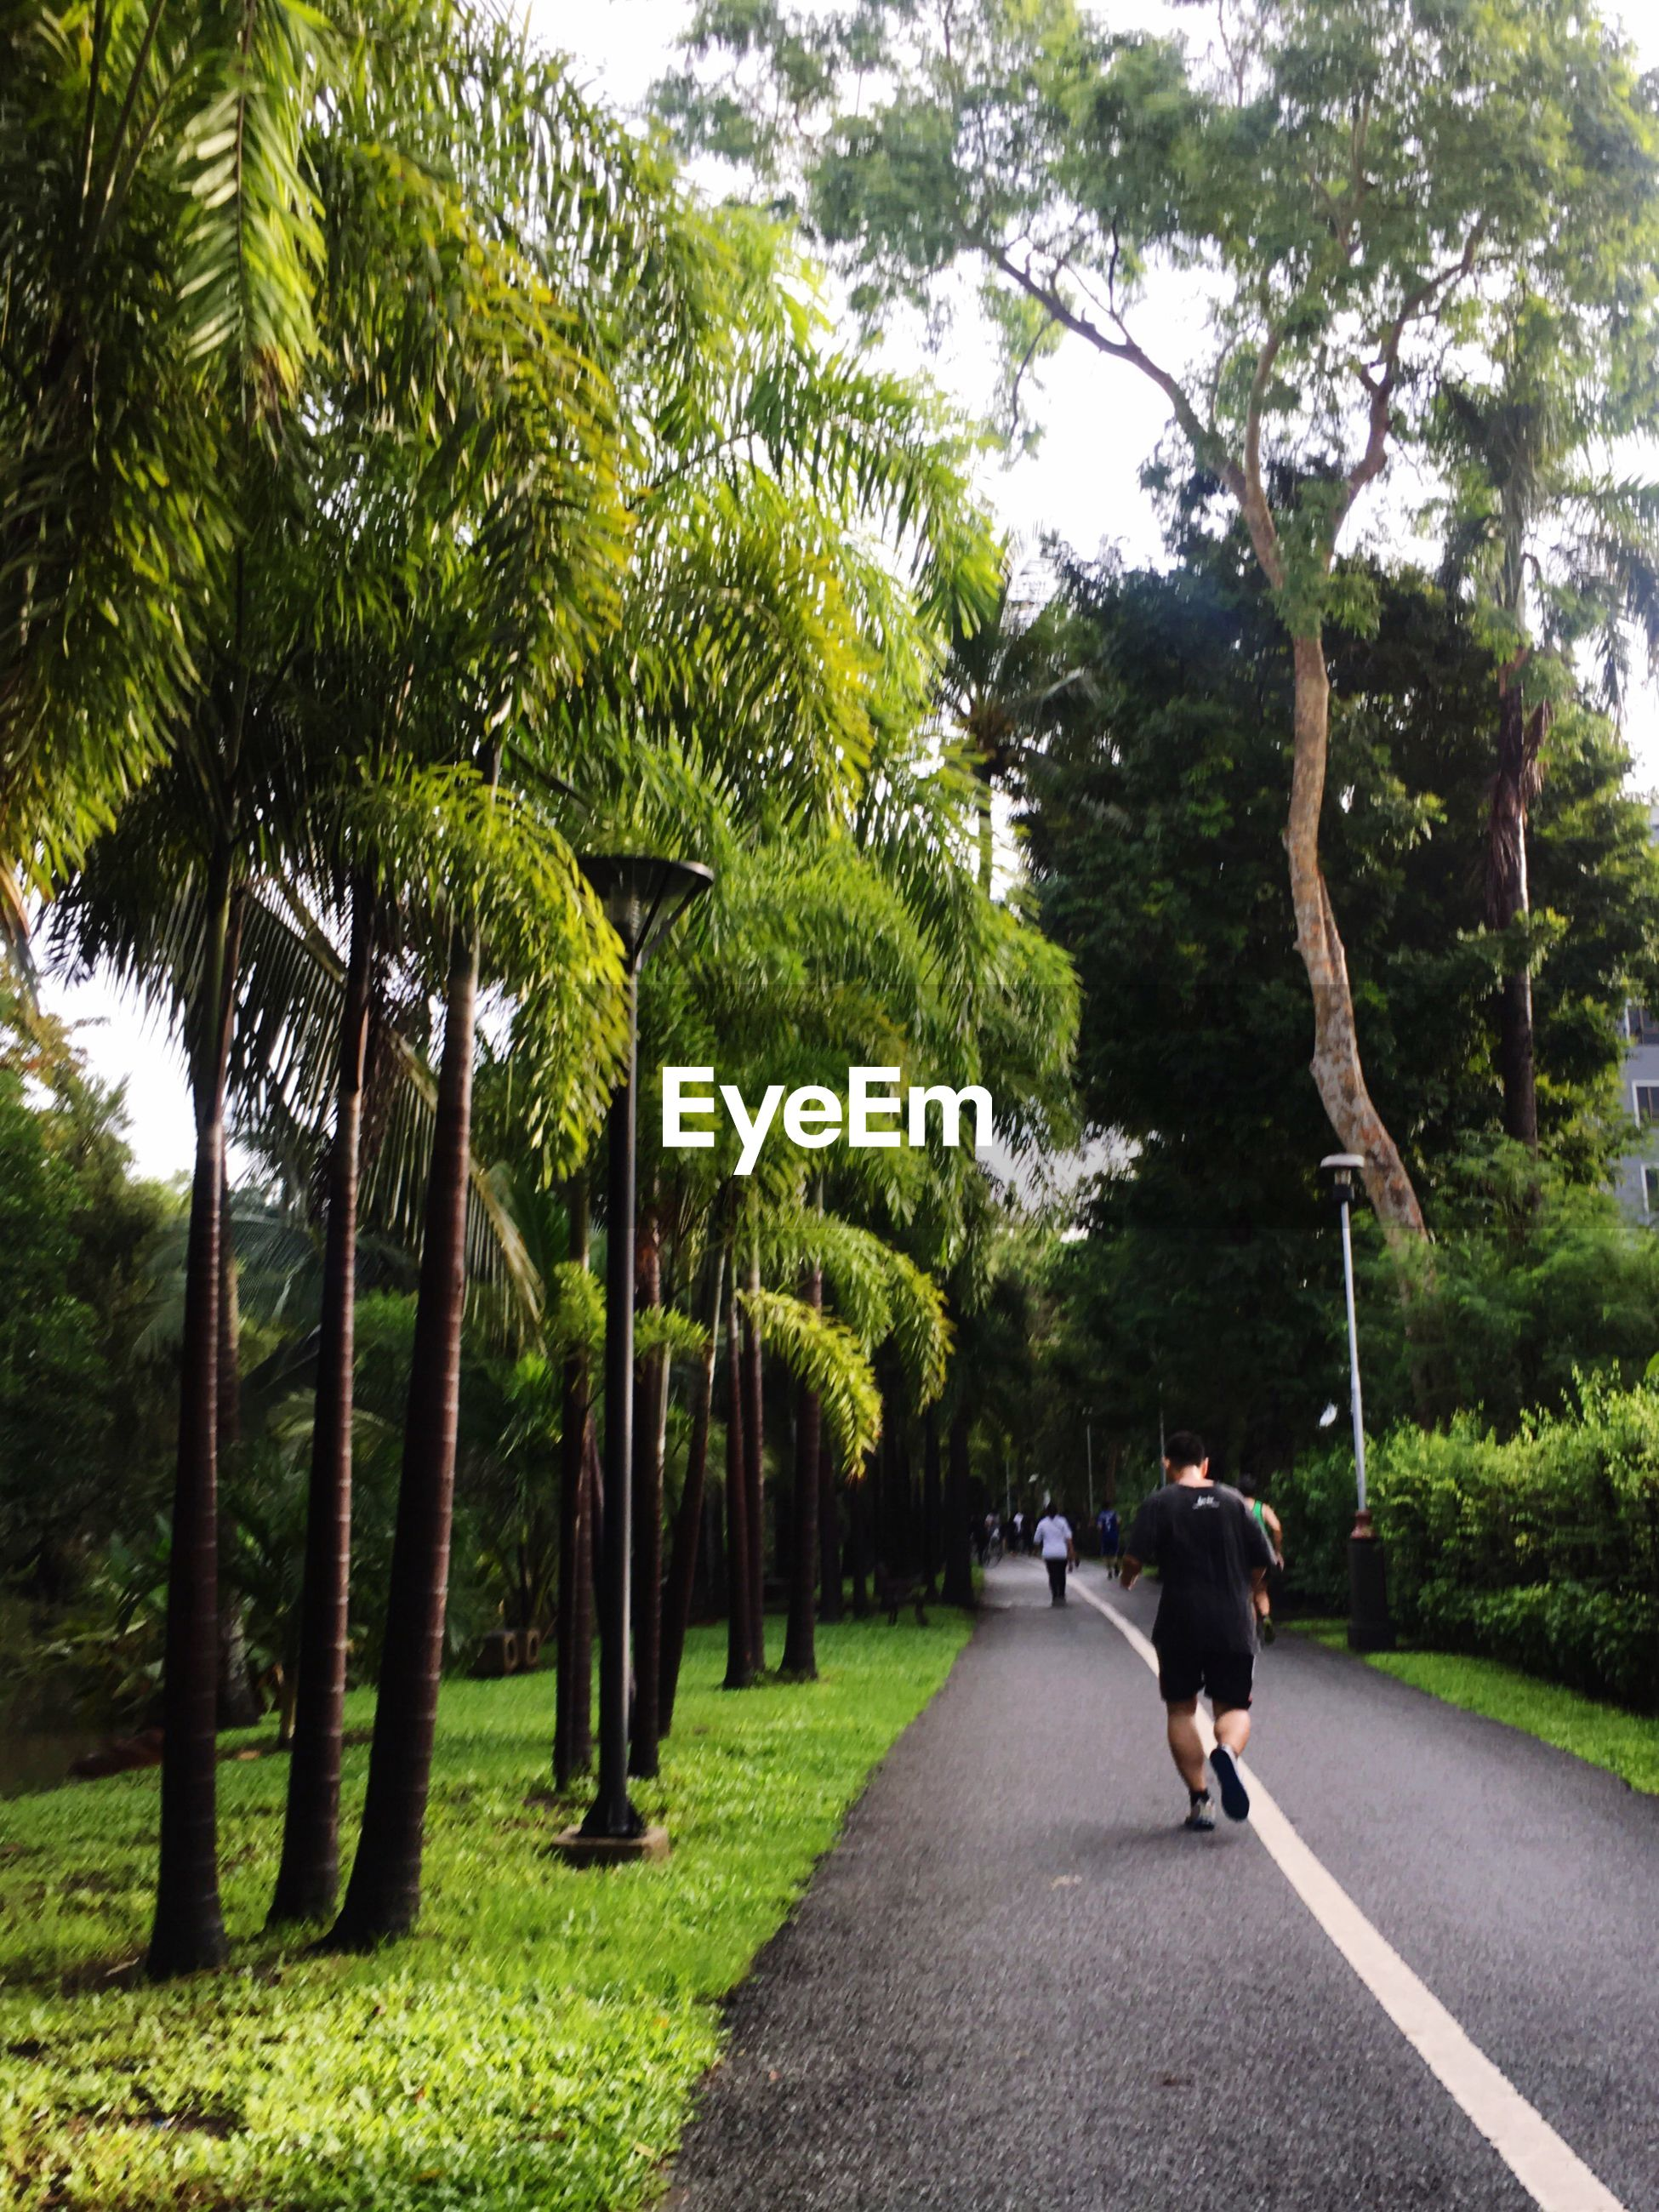 tree, walking, growth, full length, road, one person, rear view, the way forward, nature, real people, outdoors, day, palm tree, grass, men, women, people